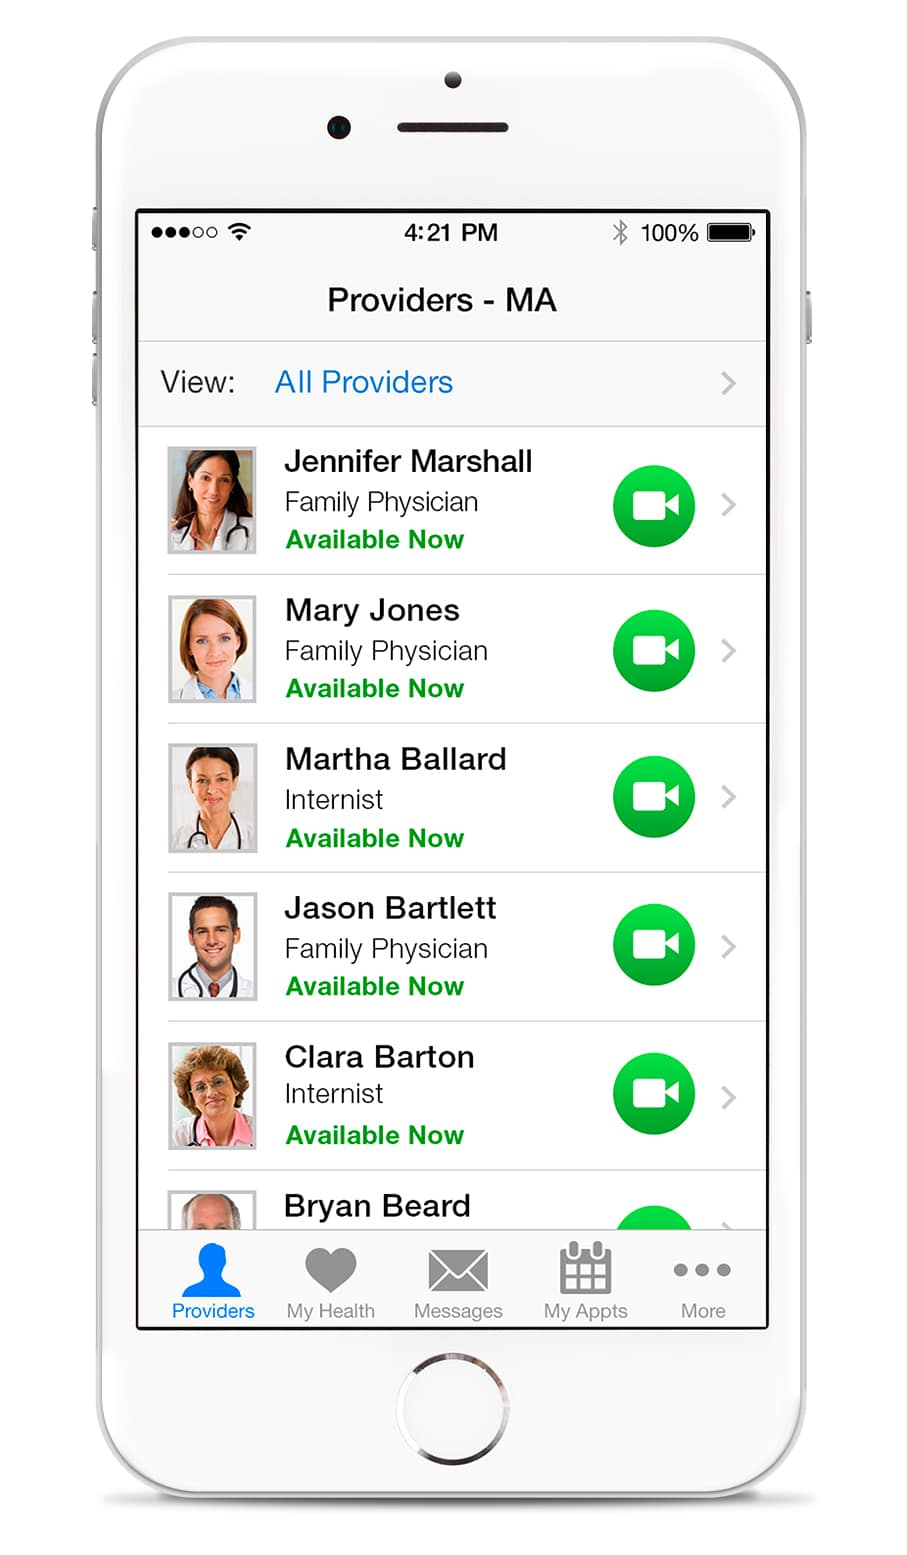 You can view the available Amwell providers, their background, and credentials and choose the doctor you're most comfortable seeing.